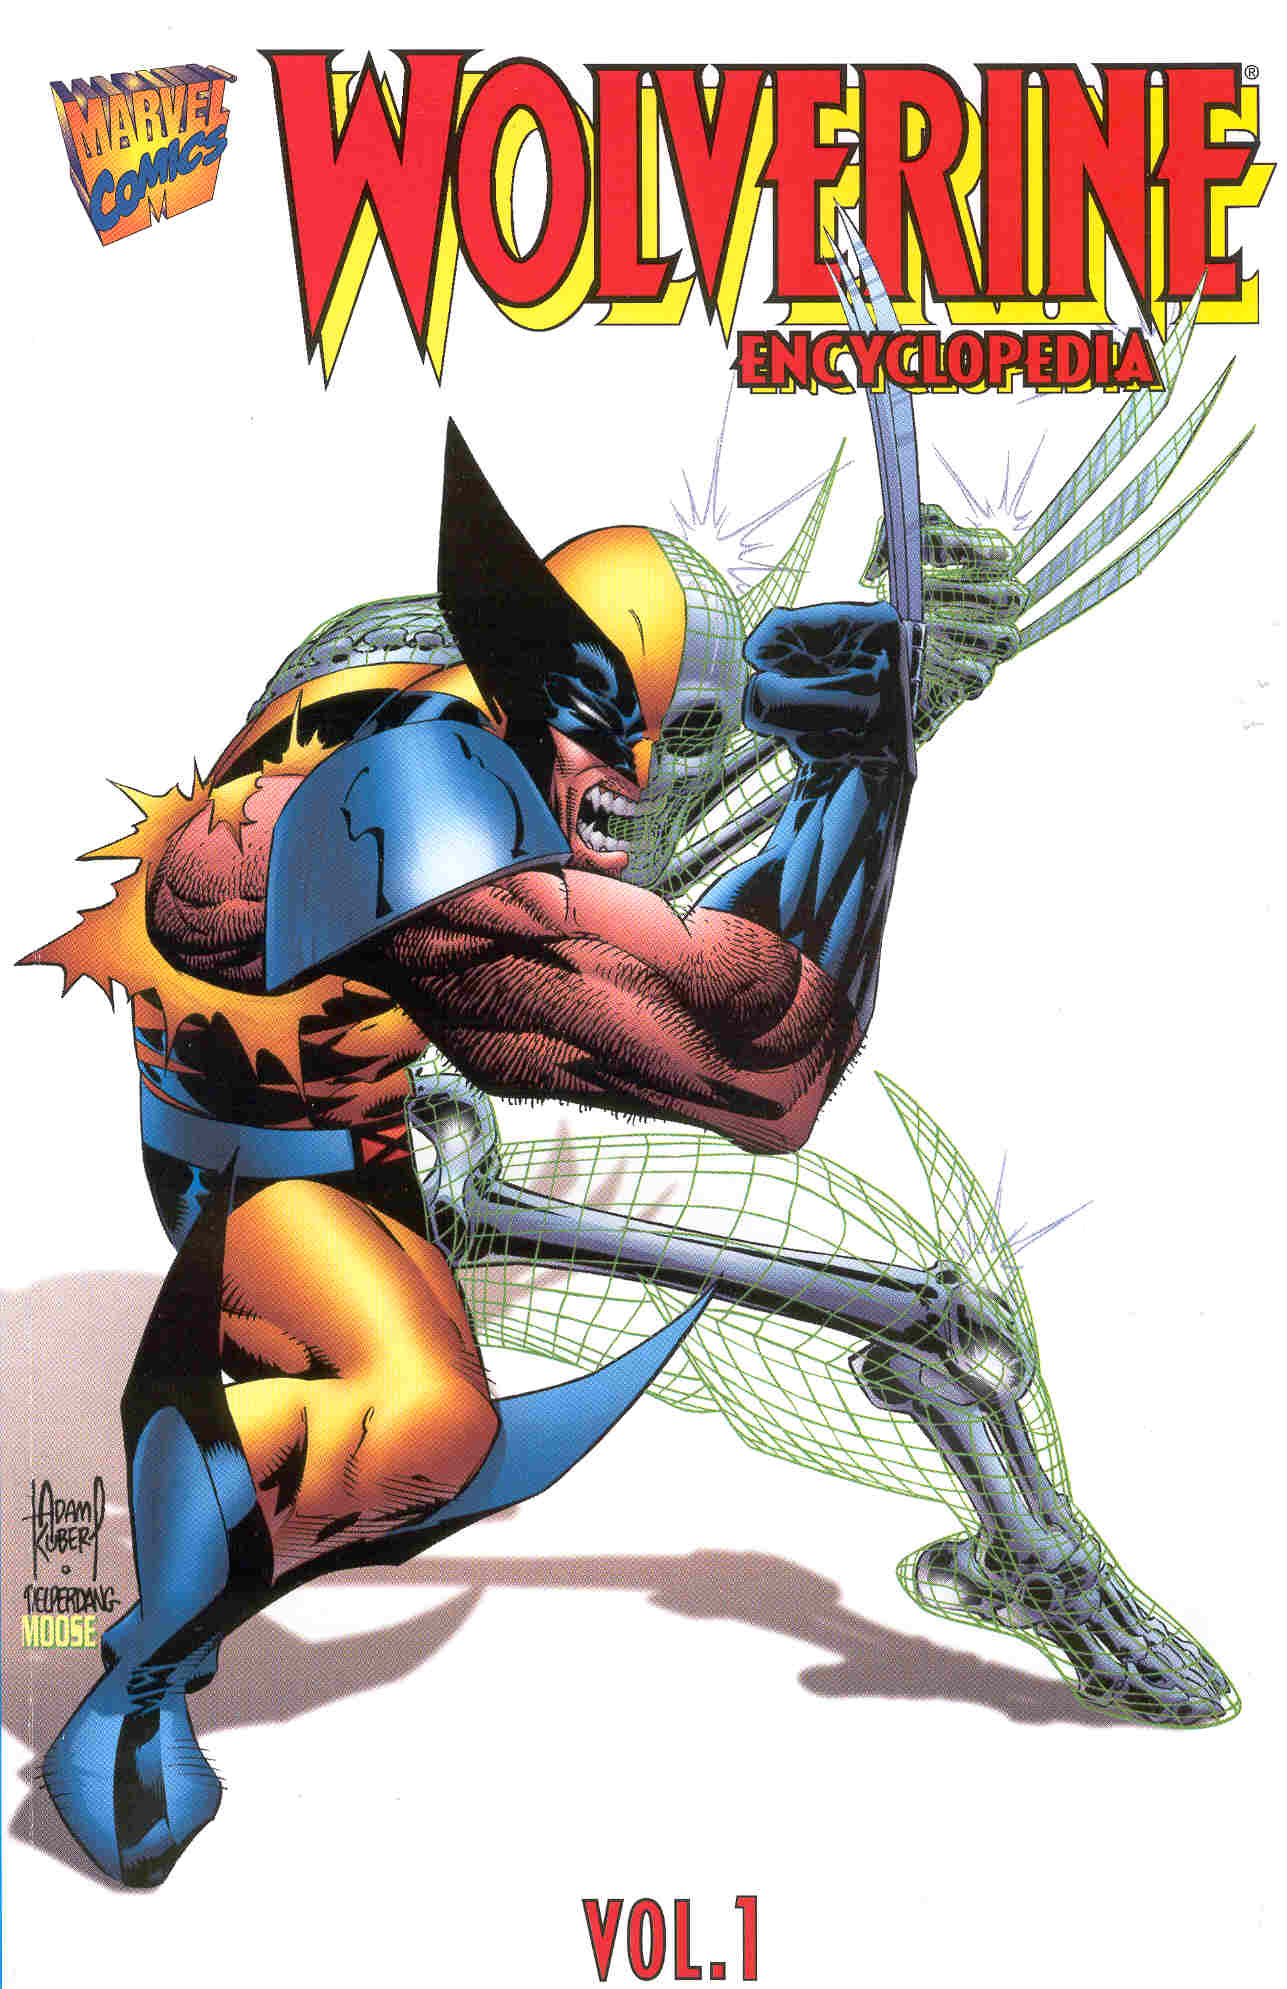 Wolverine Encyclopedia Vol 1